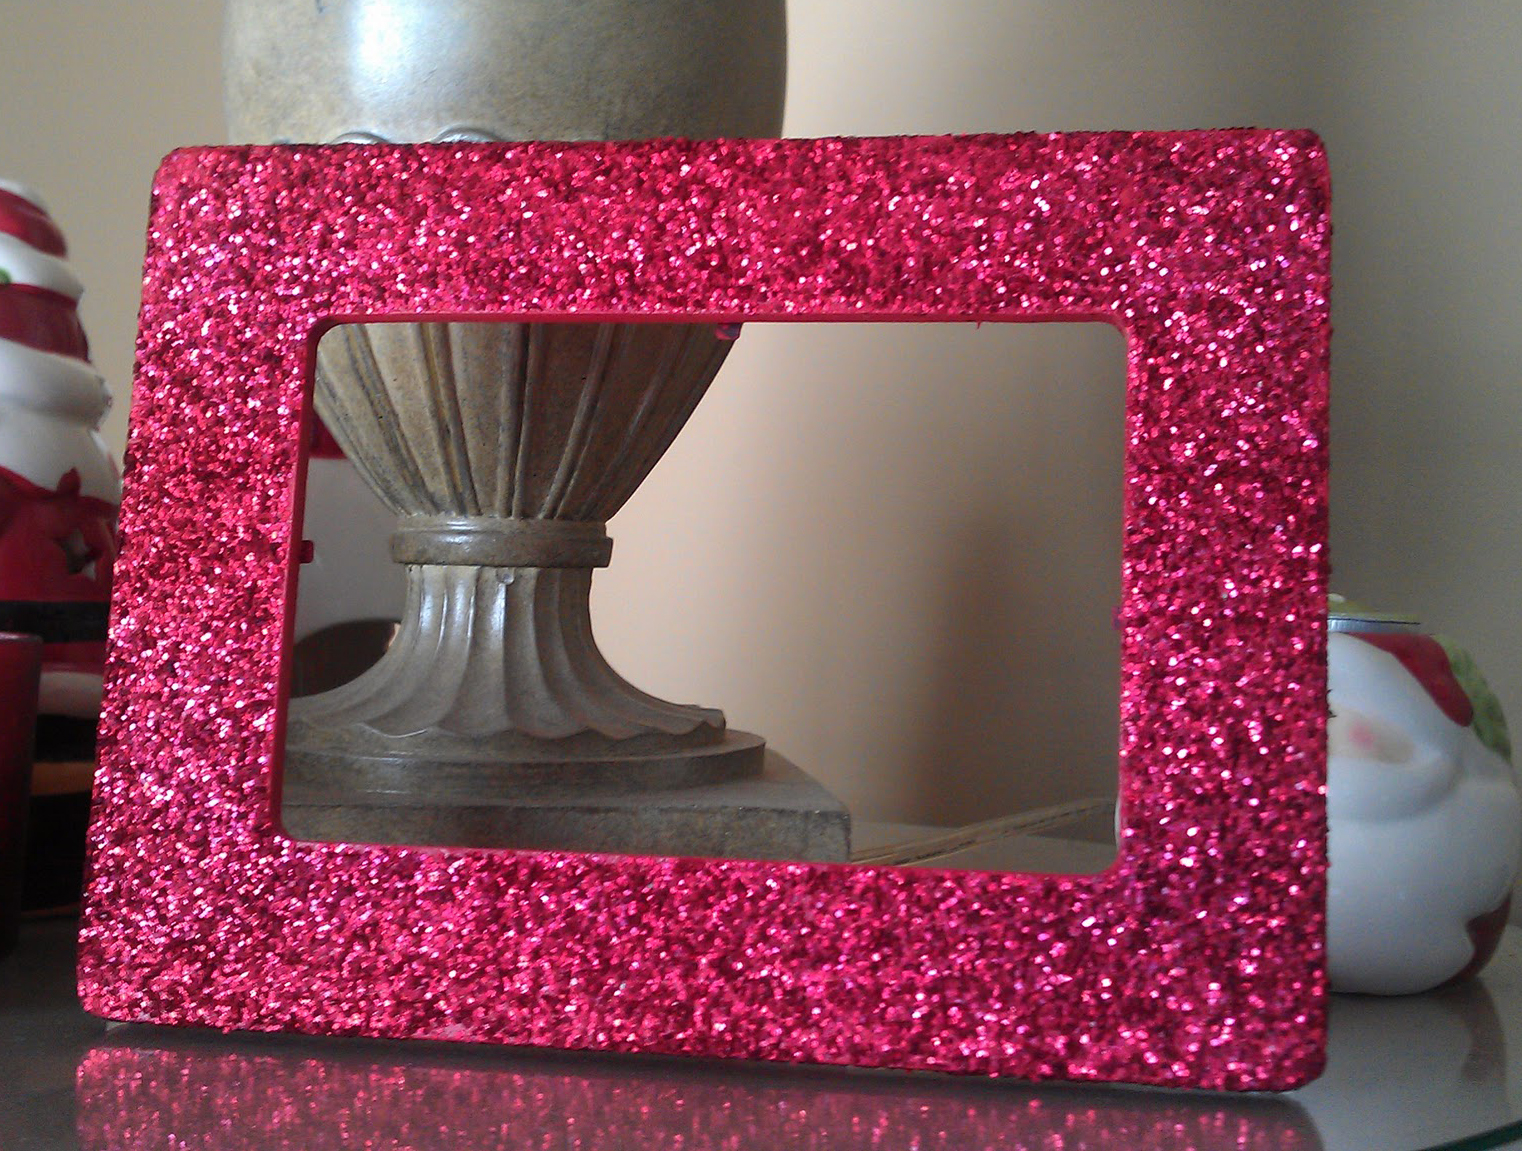 i also created a green version of these frames using a finer glitter